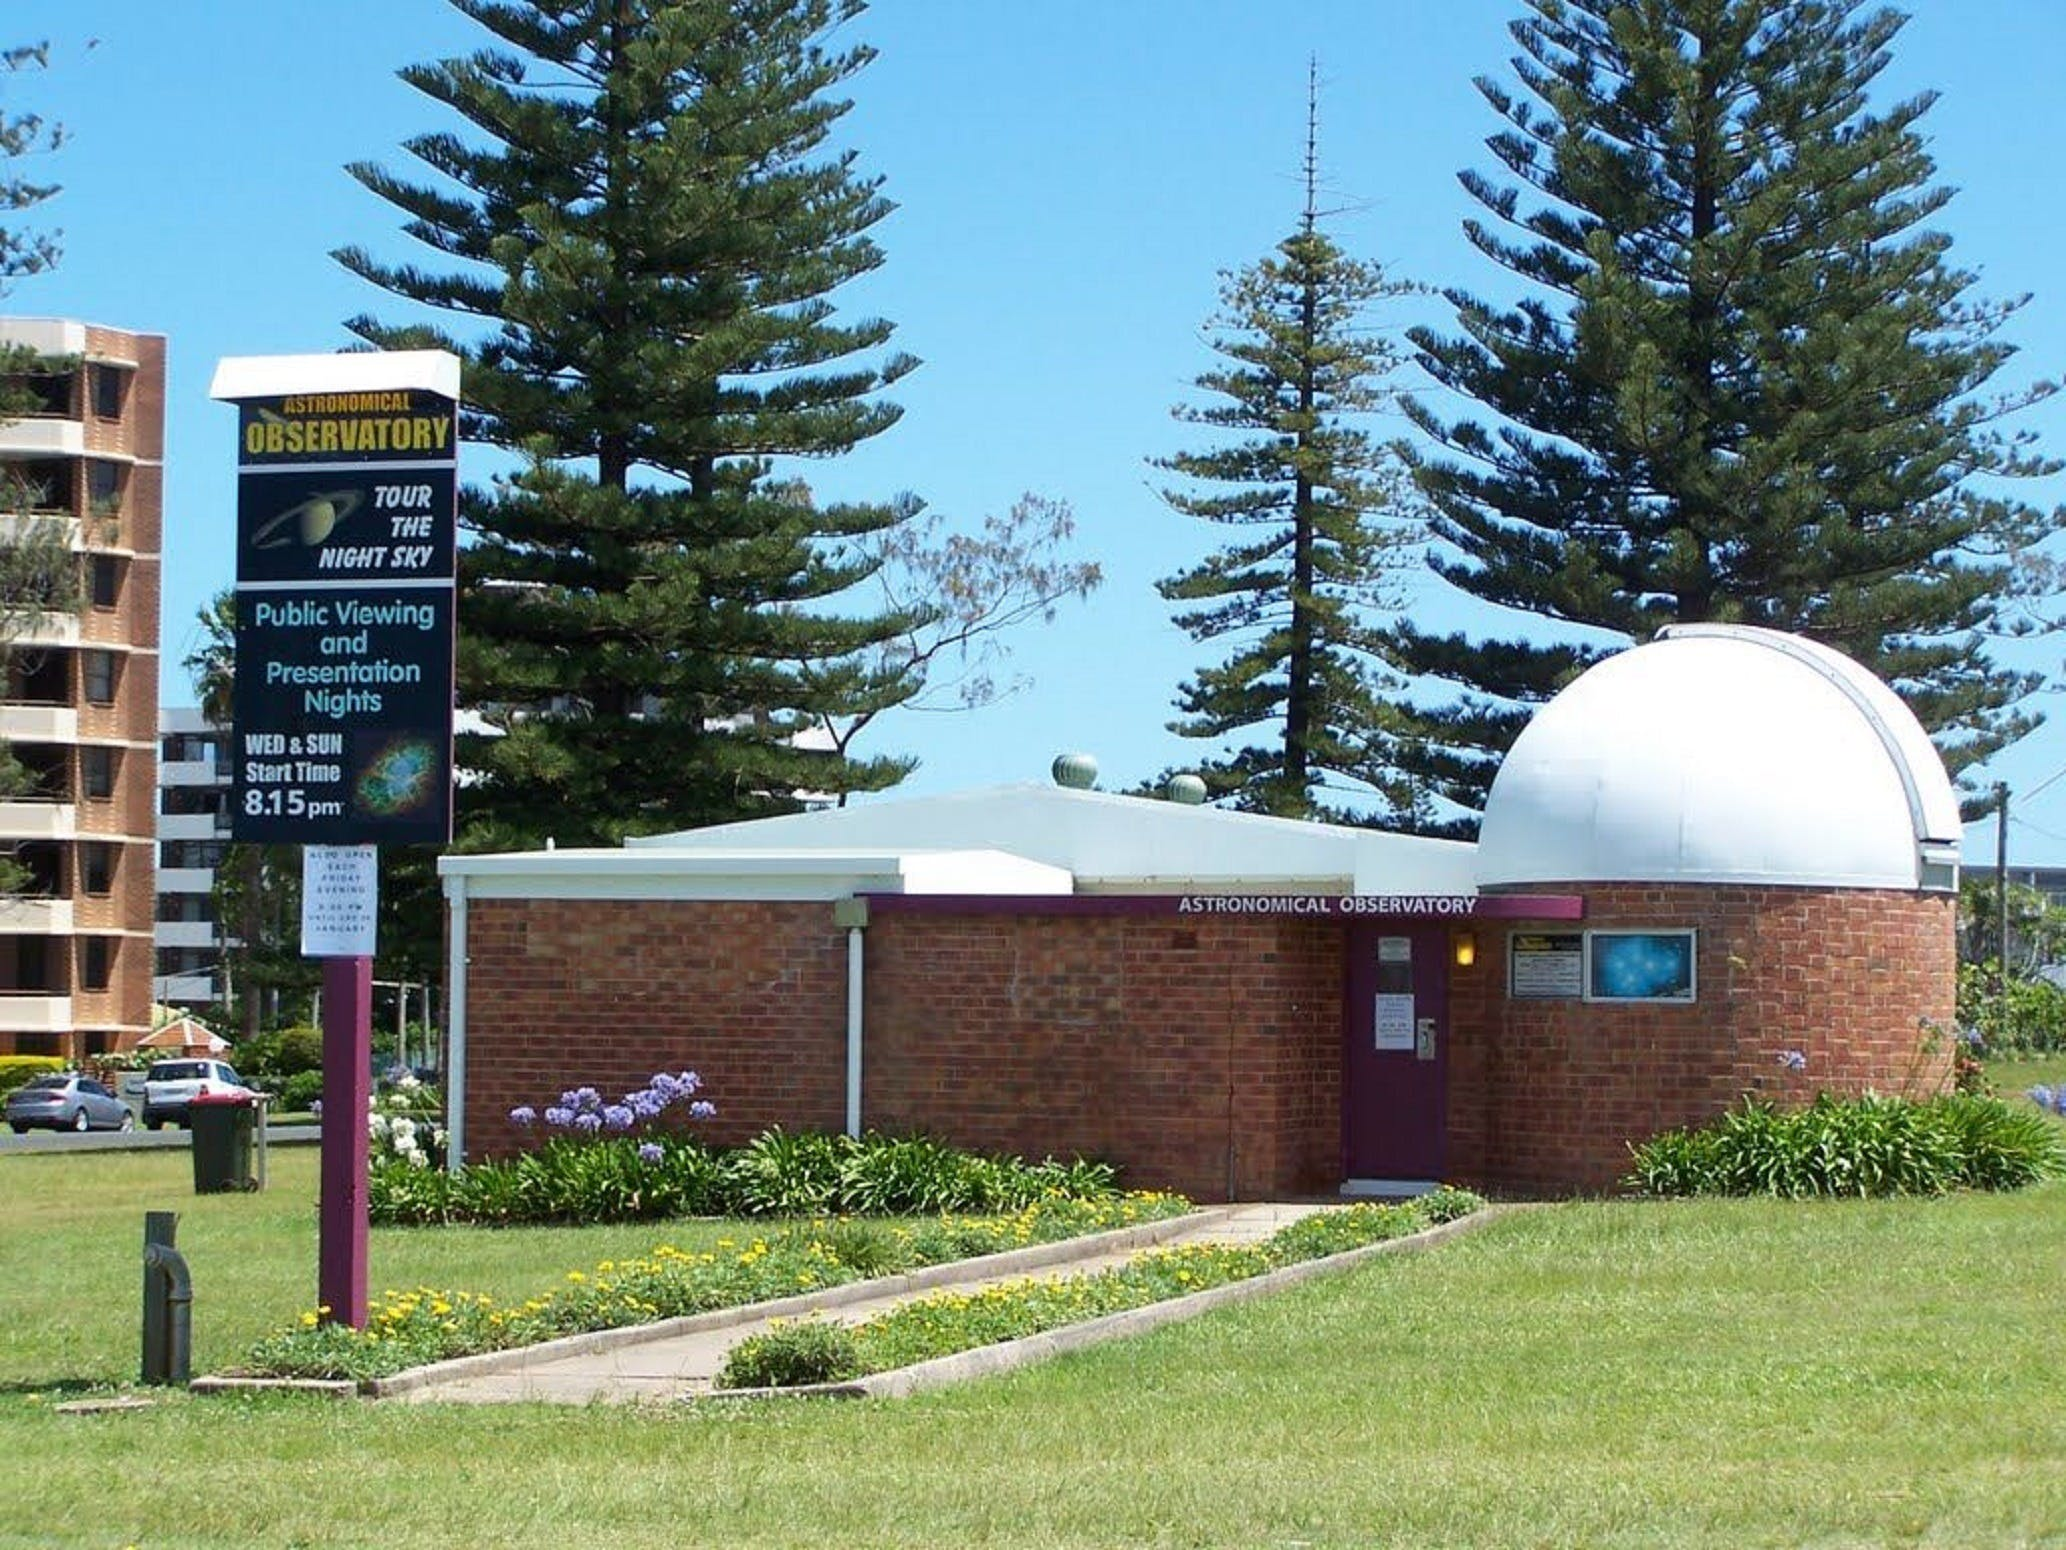 Port Macquarie Astronomical Observatory - Australia Accommodation